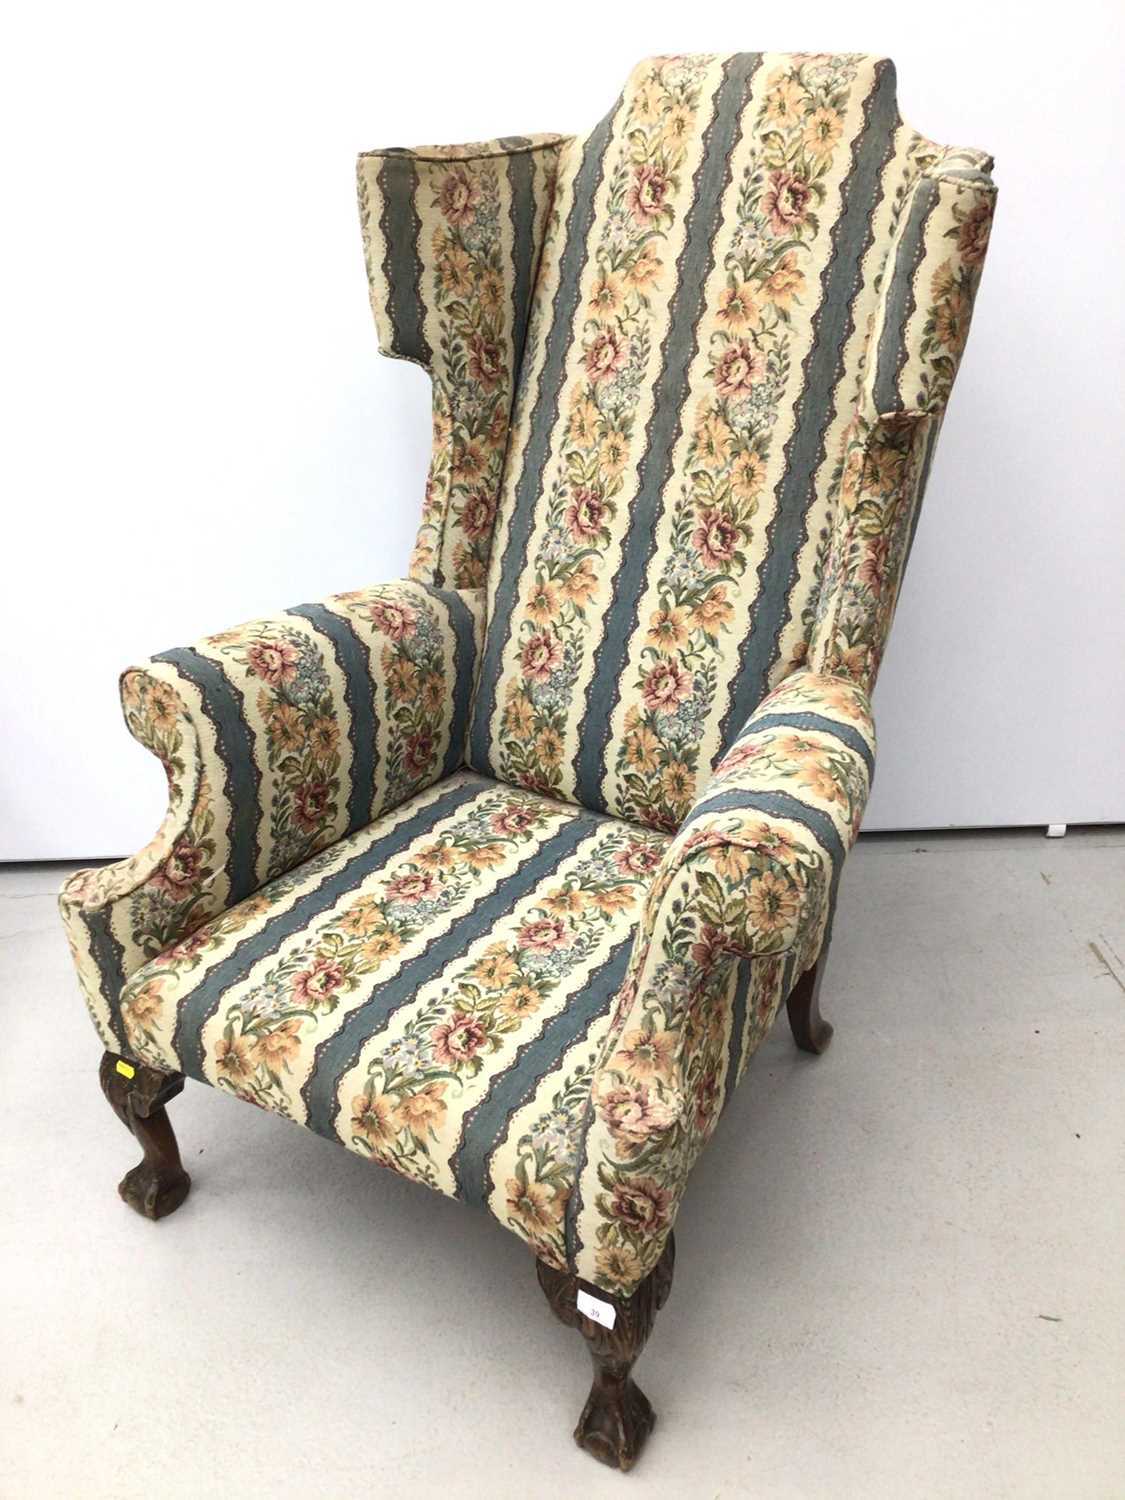 Lot 39 - Good quality Georgian style wing back armchair with floral upholstery on carved mahogany legs with claw and ball feet